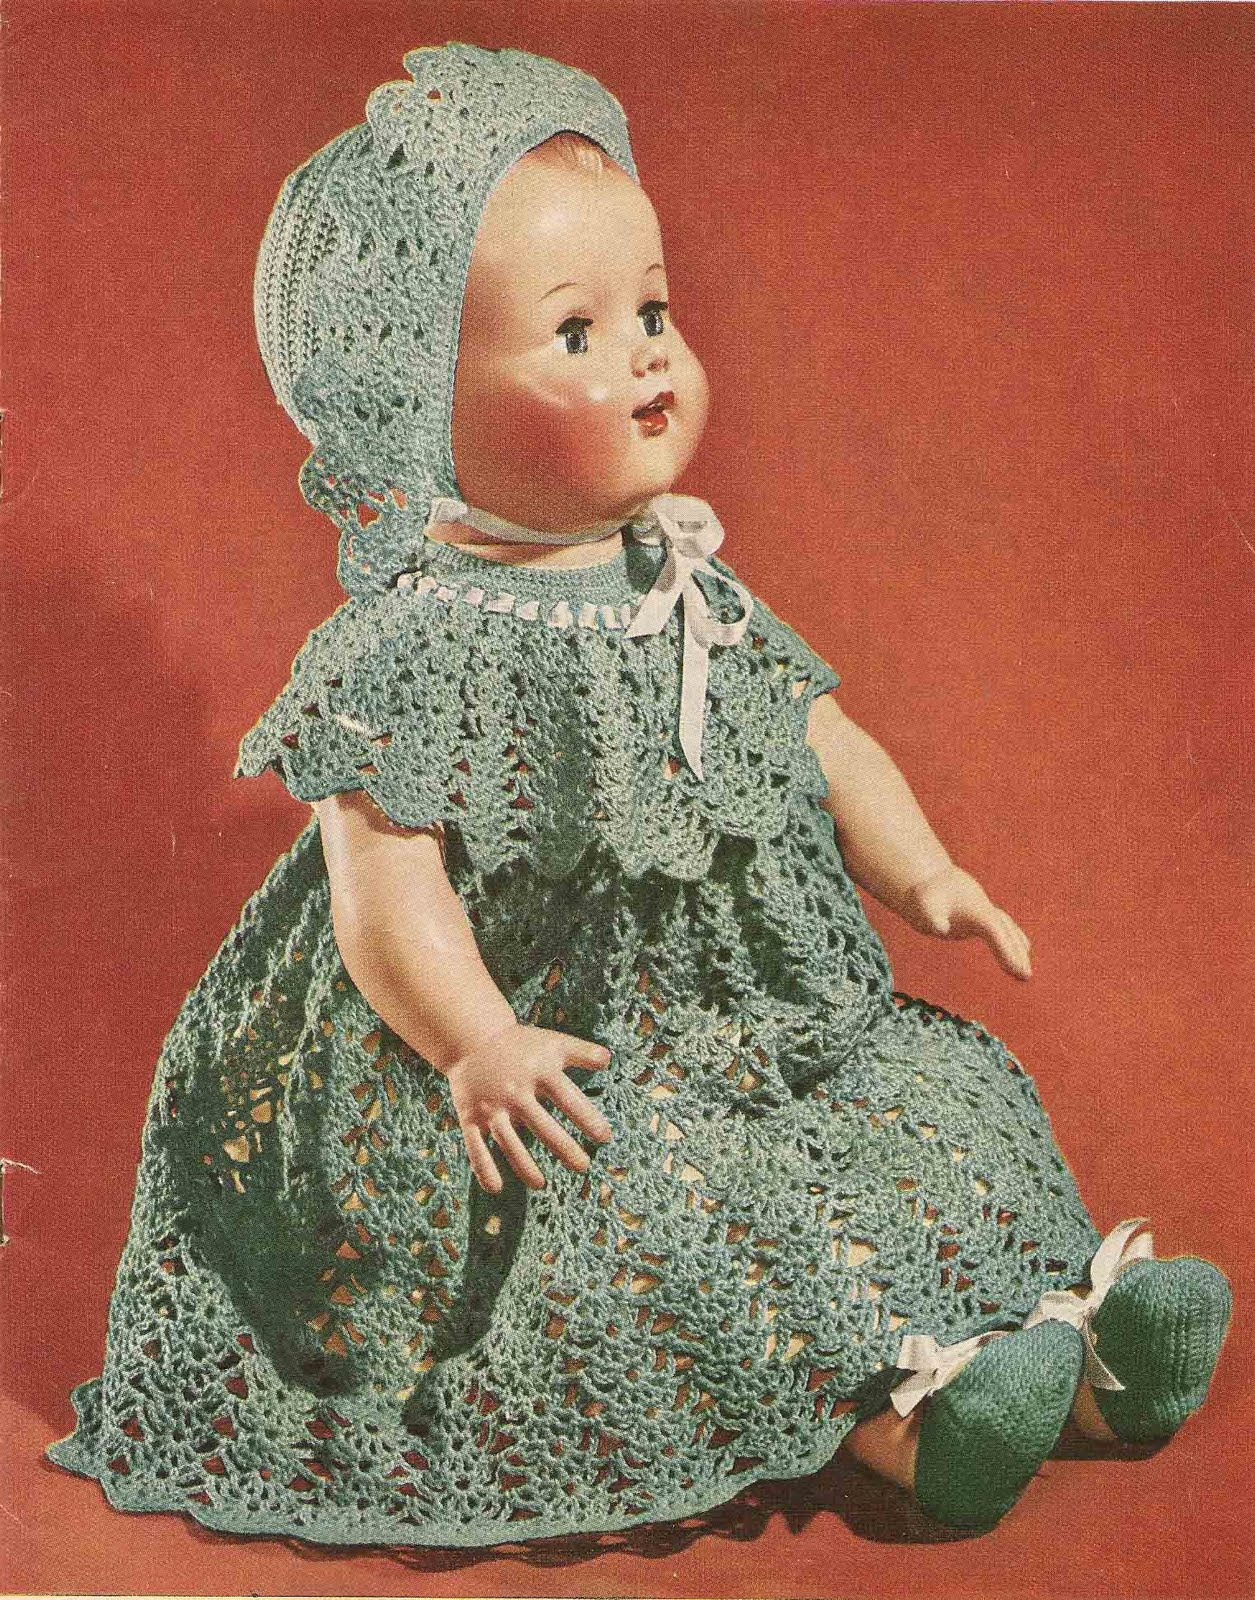 Crochet Patterns For Doll Clothes : Vintage Knit Crochet Pattern Shop: The Doll Book, Crochet ...